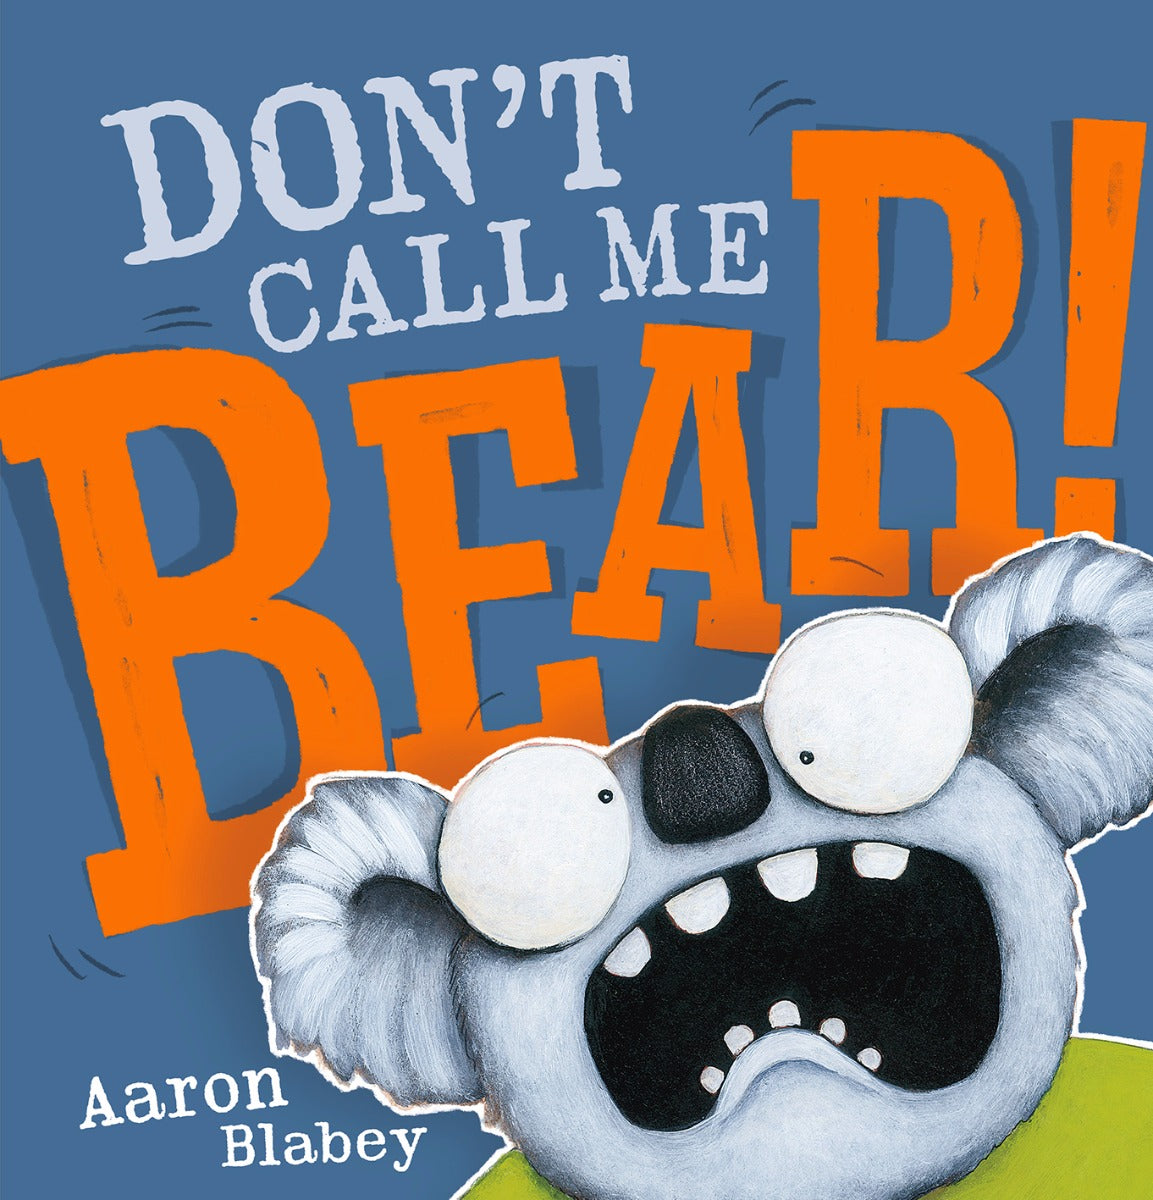 Don't Call Me Bear! is a hilarious book by Aaron Blabey. Available at Little Sprout now!